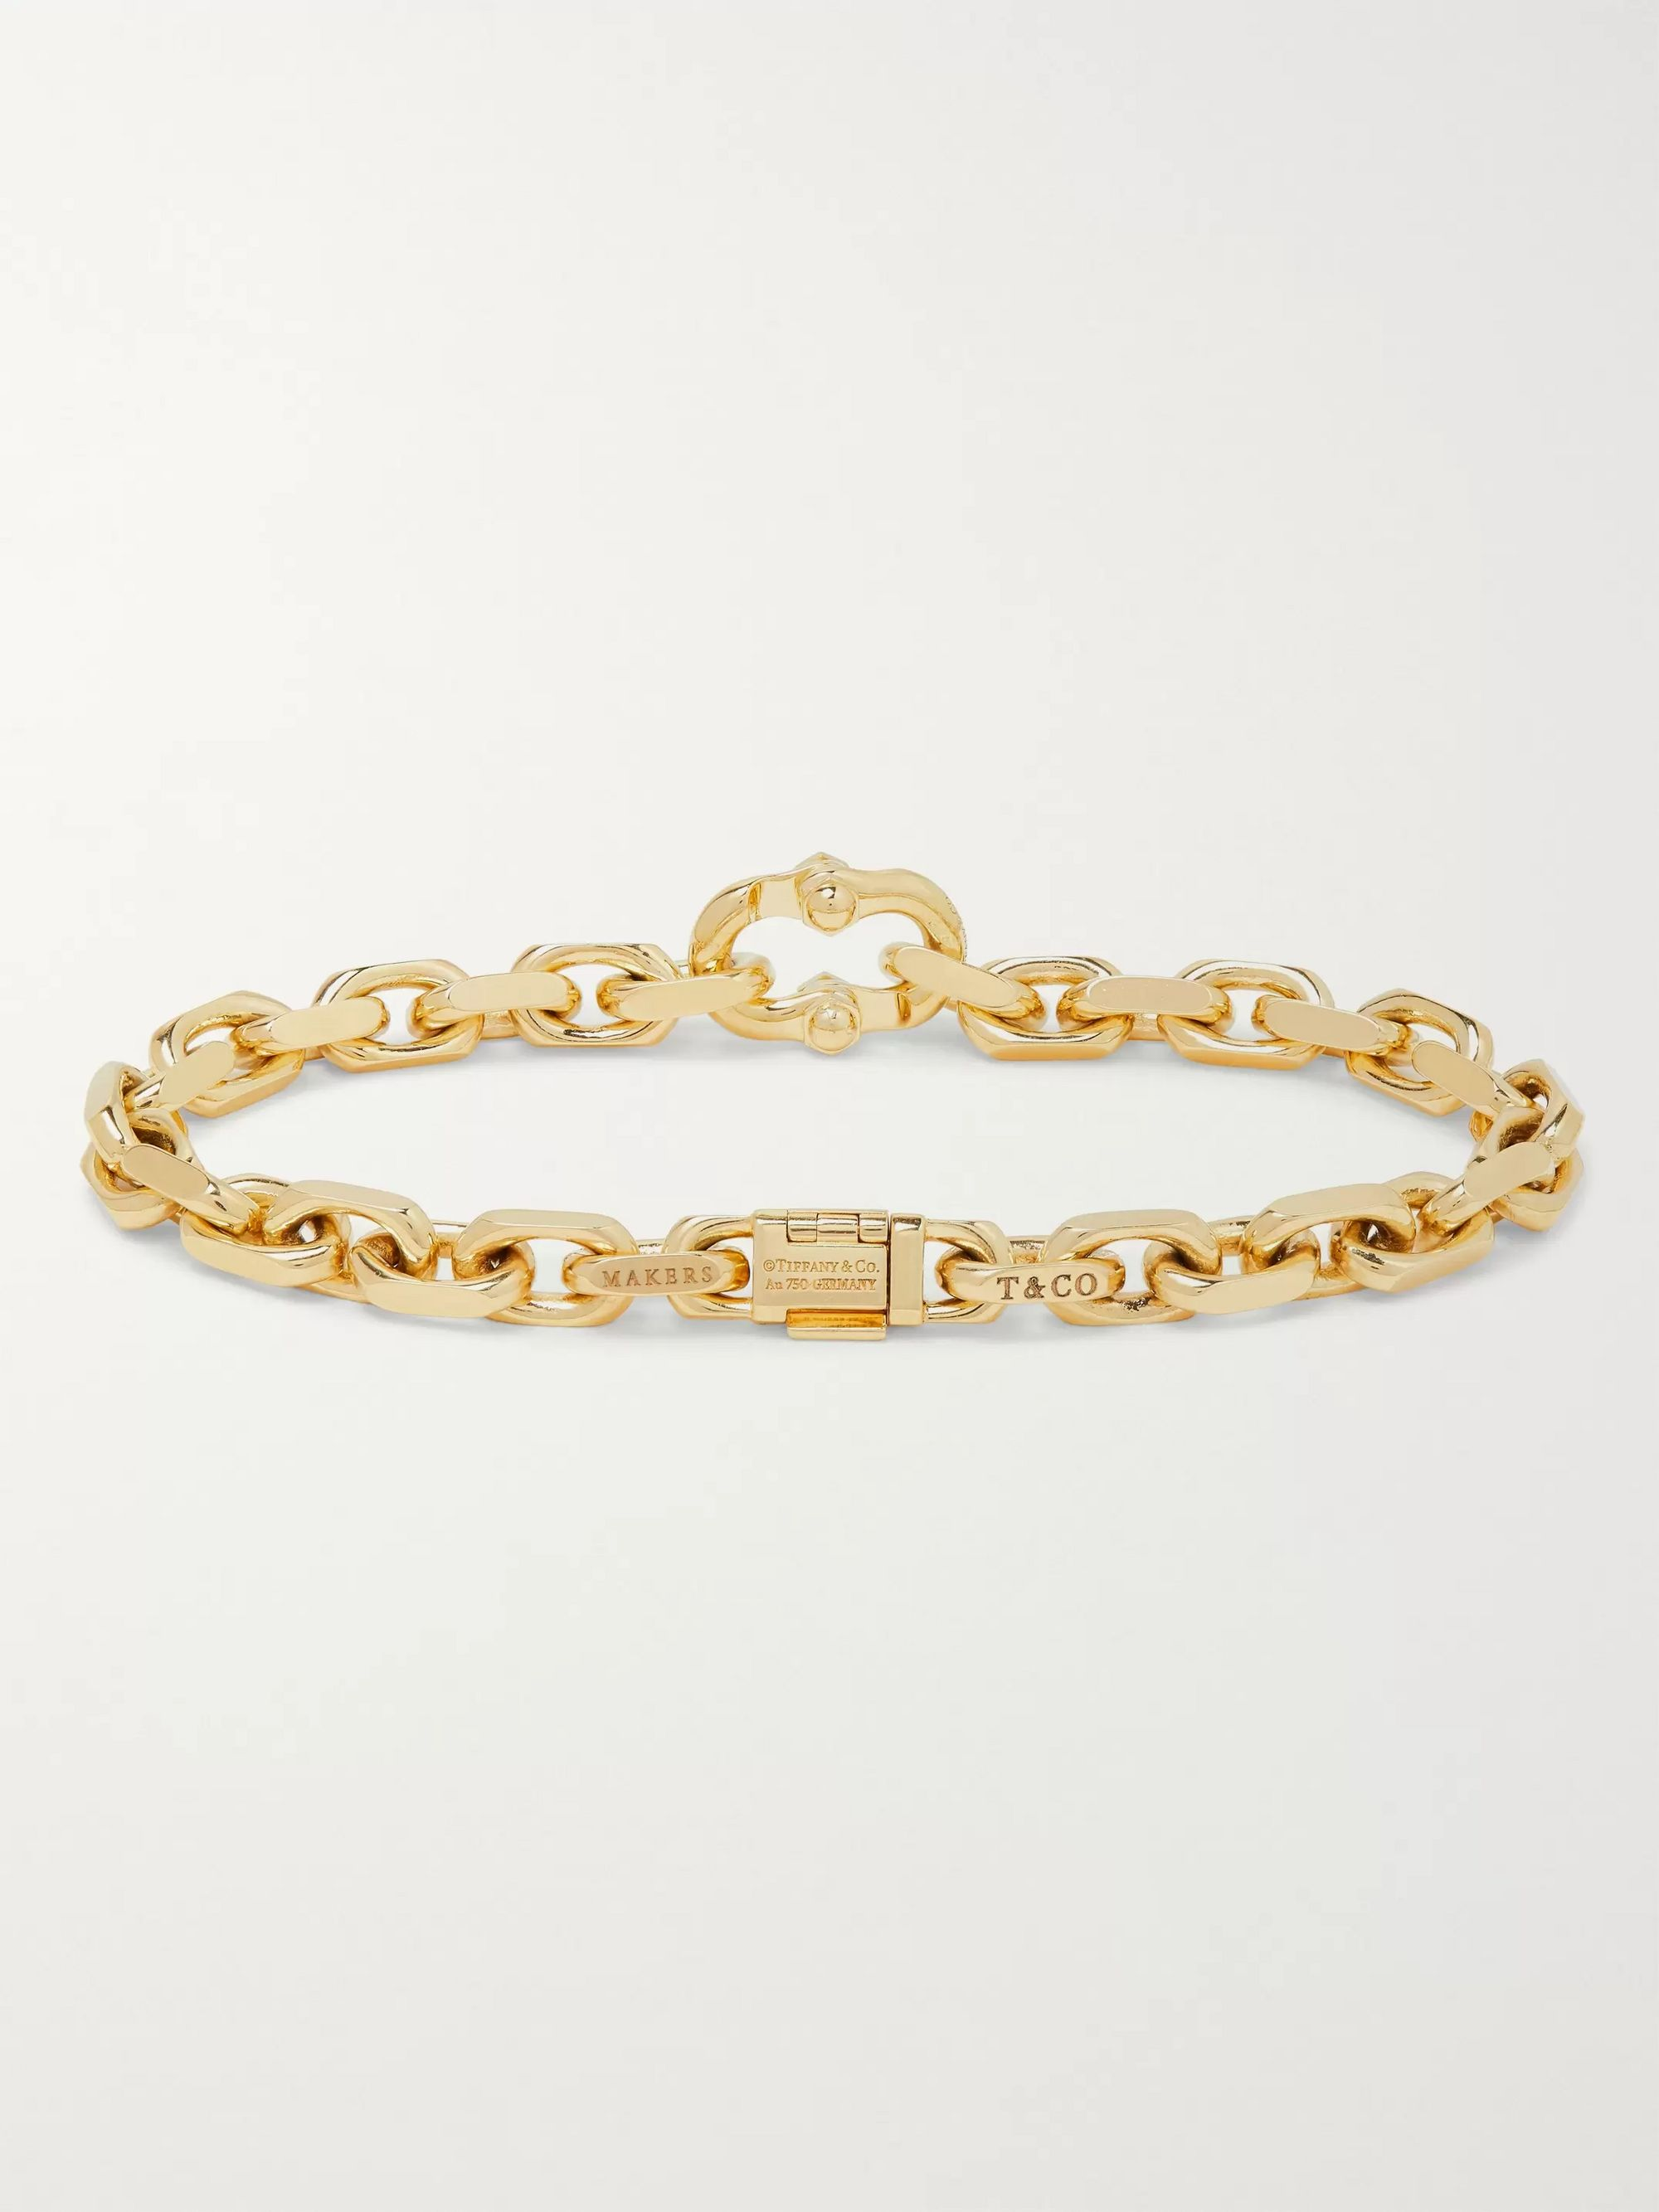 Tiffany & Co. Tiffany 1837 Makers 18-Karat Gold Bracelet